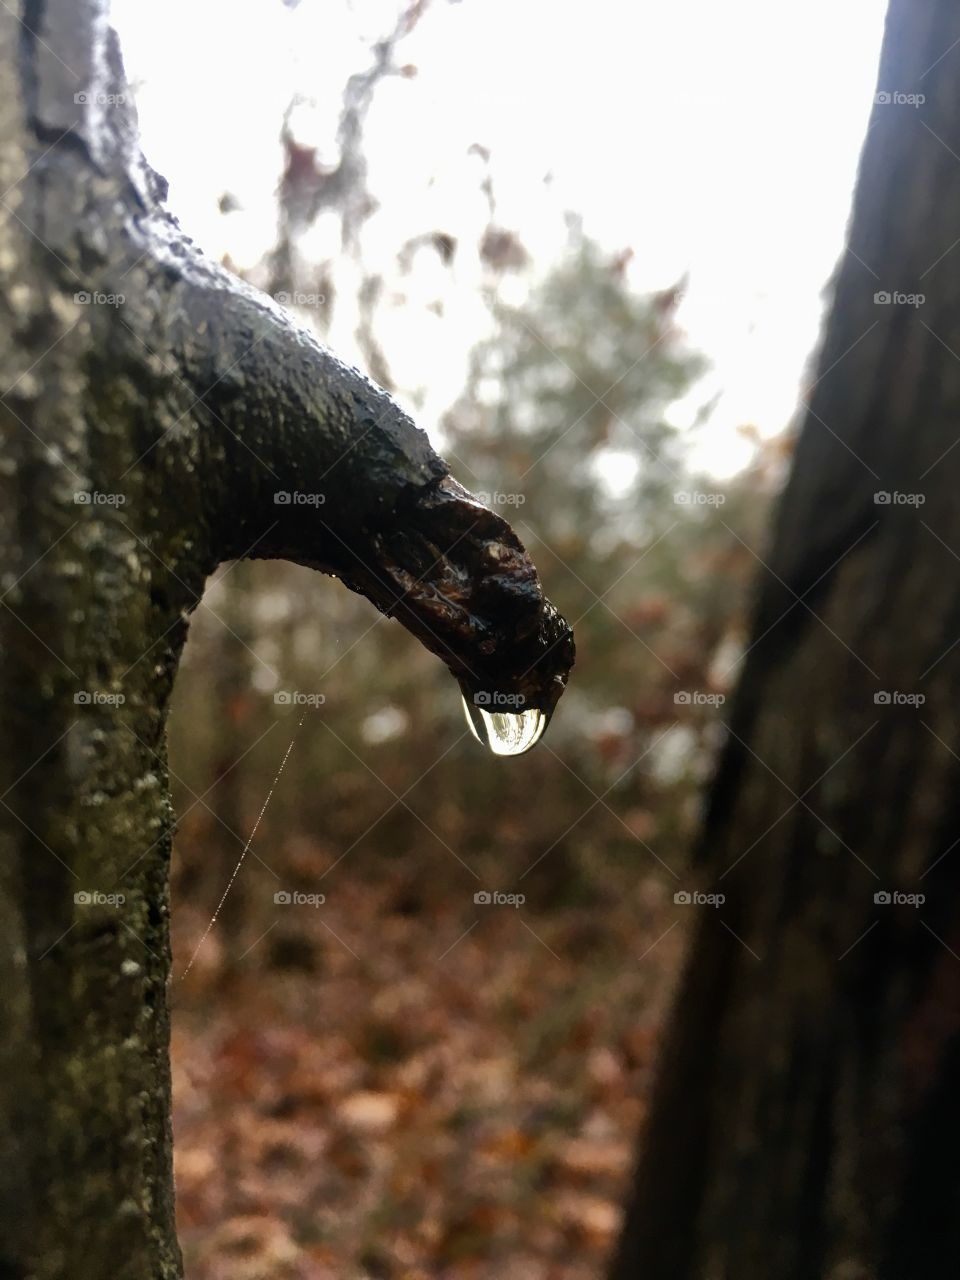 Raindrop clinging to a sprig